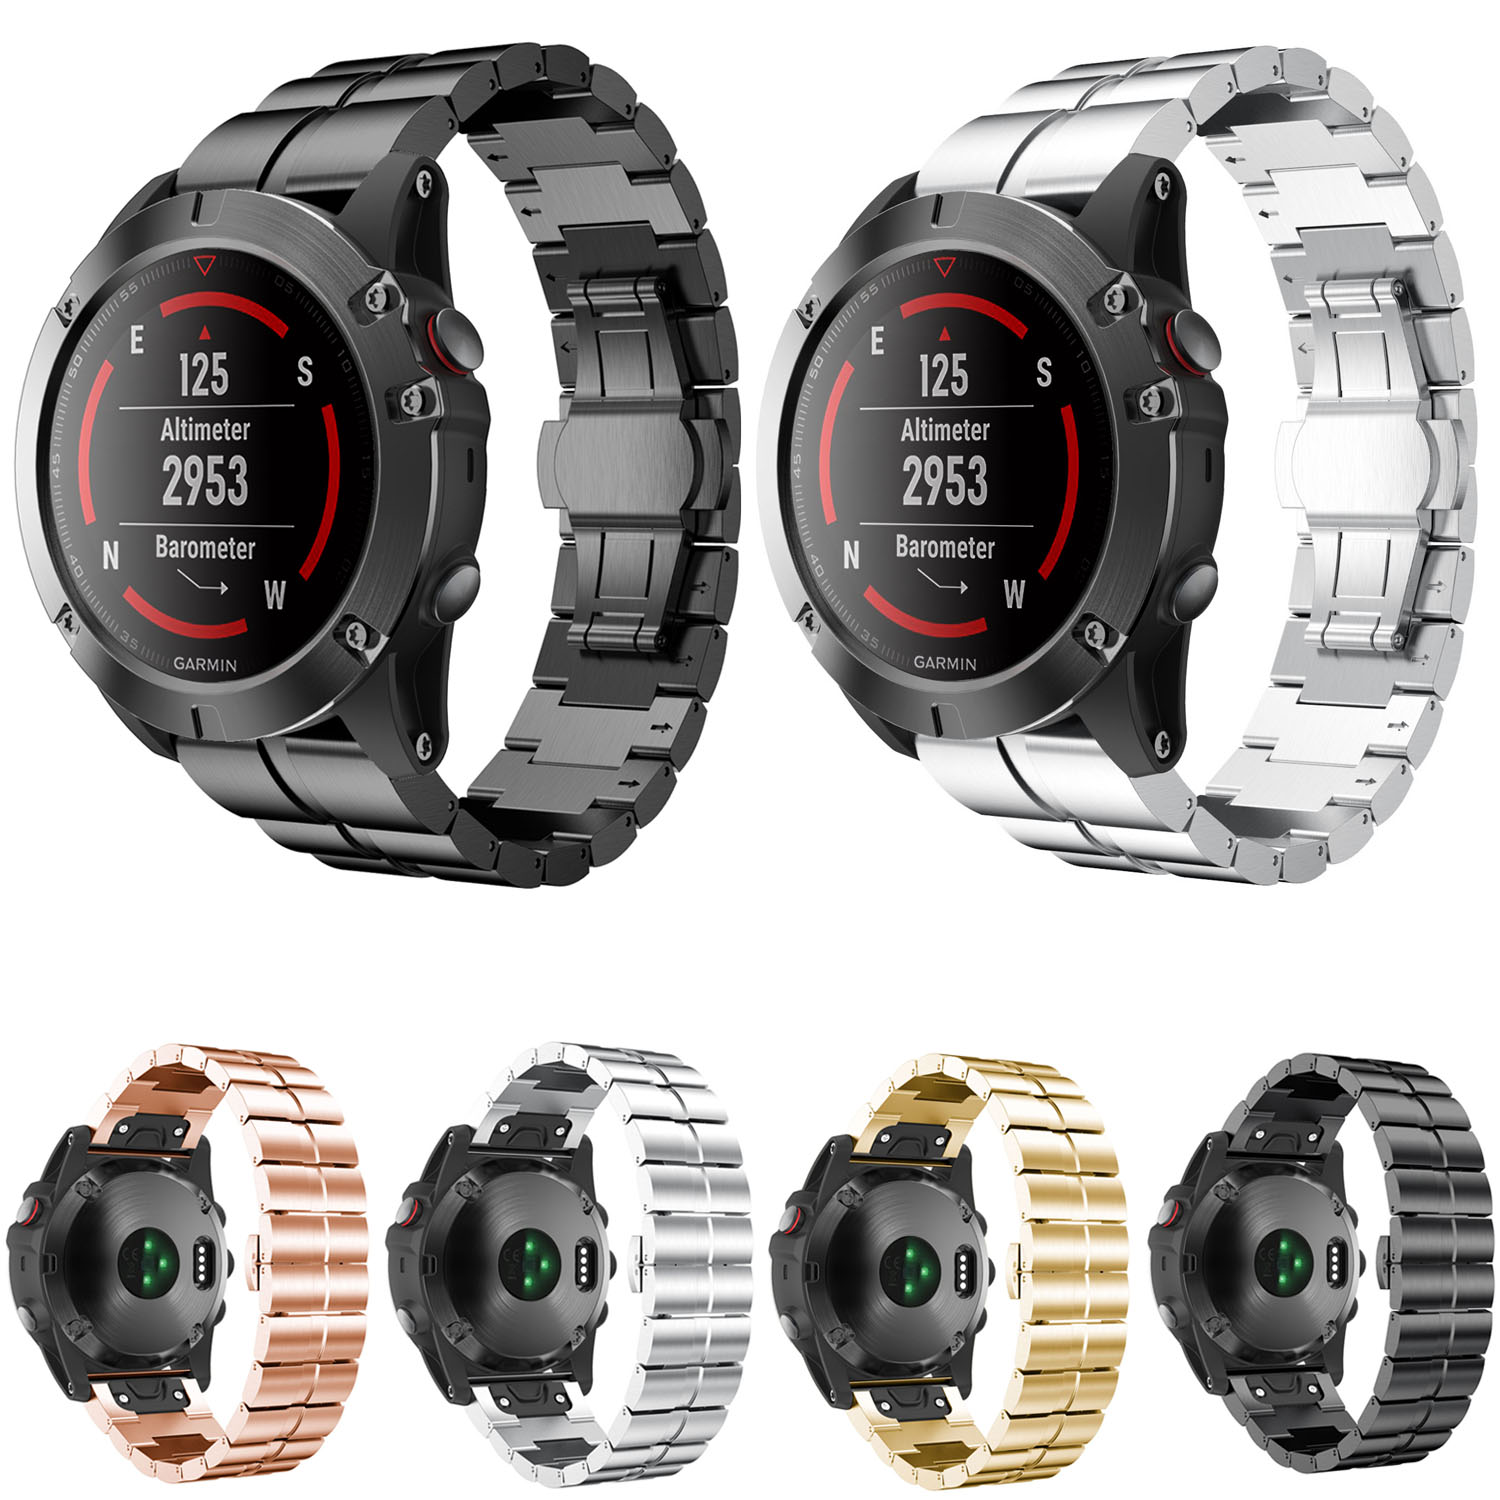 Quick Install Easy Fit Stainless Steel Watch Band for Garmin Fenix 3 Fenix 3 HR